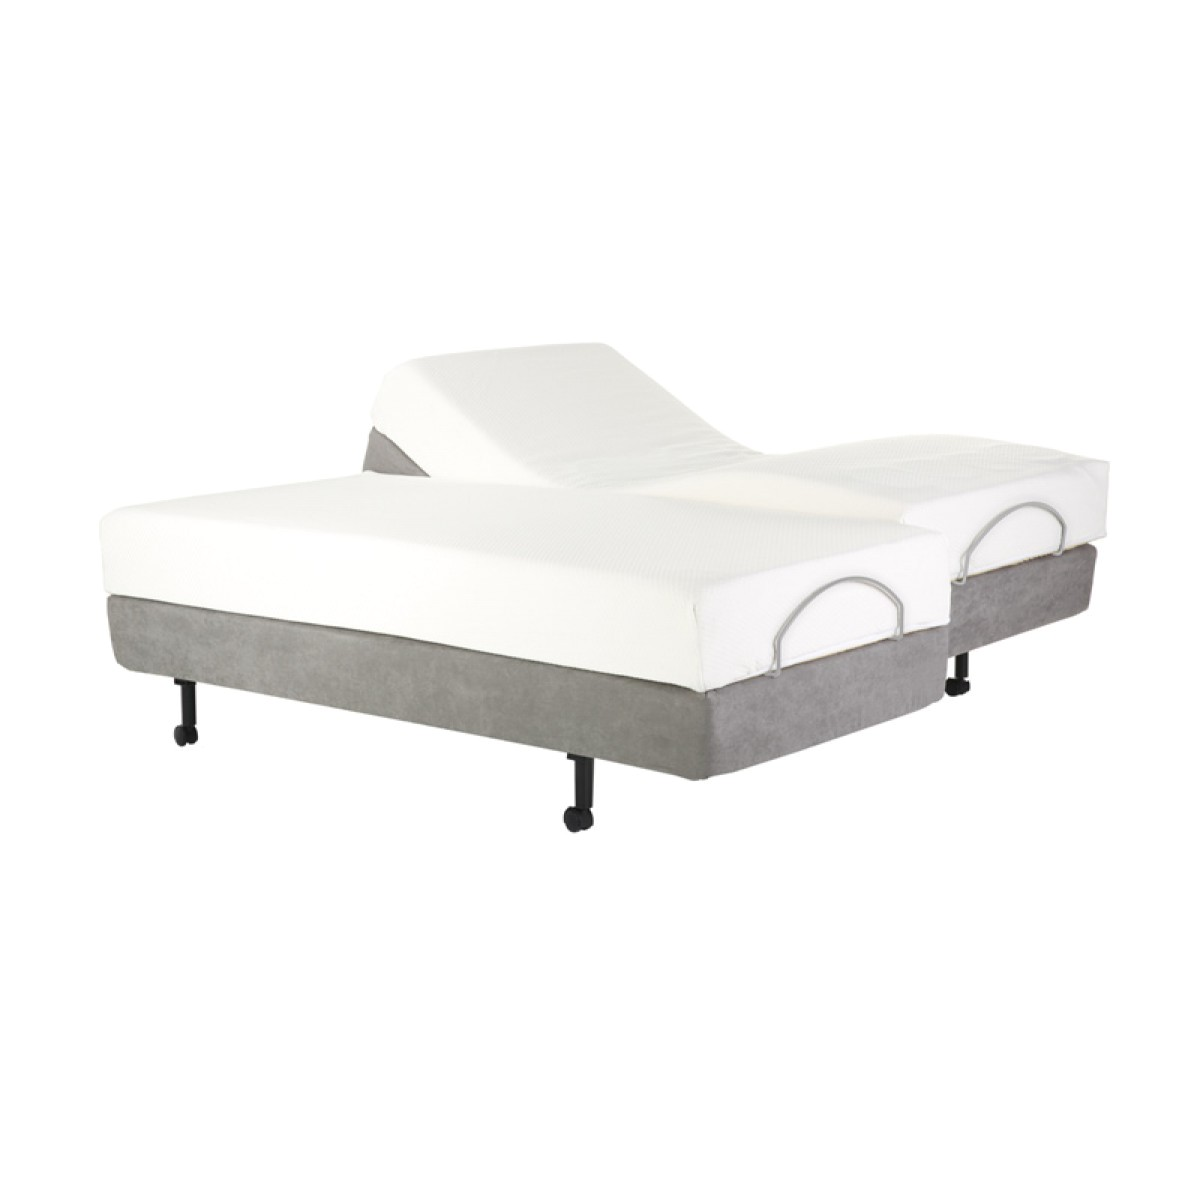 leggett and platt simplicity performance series queen adjustable bed base simplicity queen